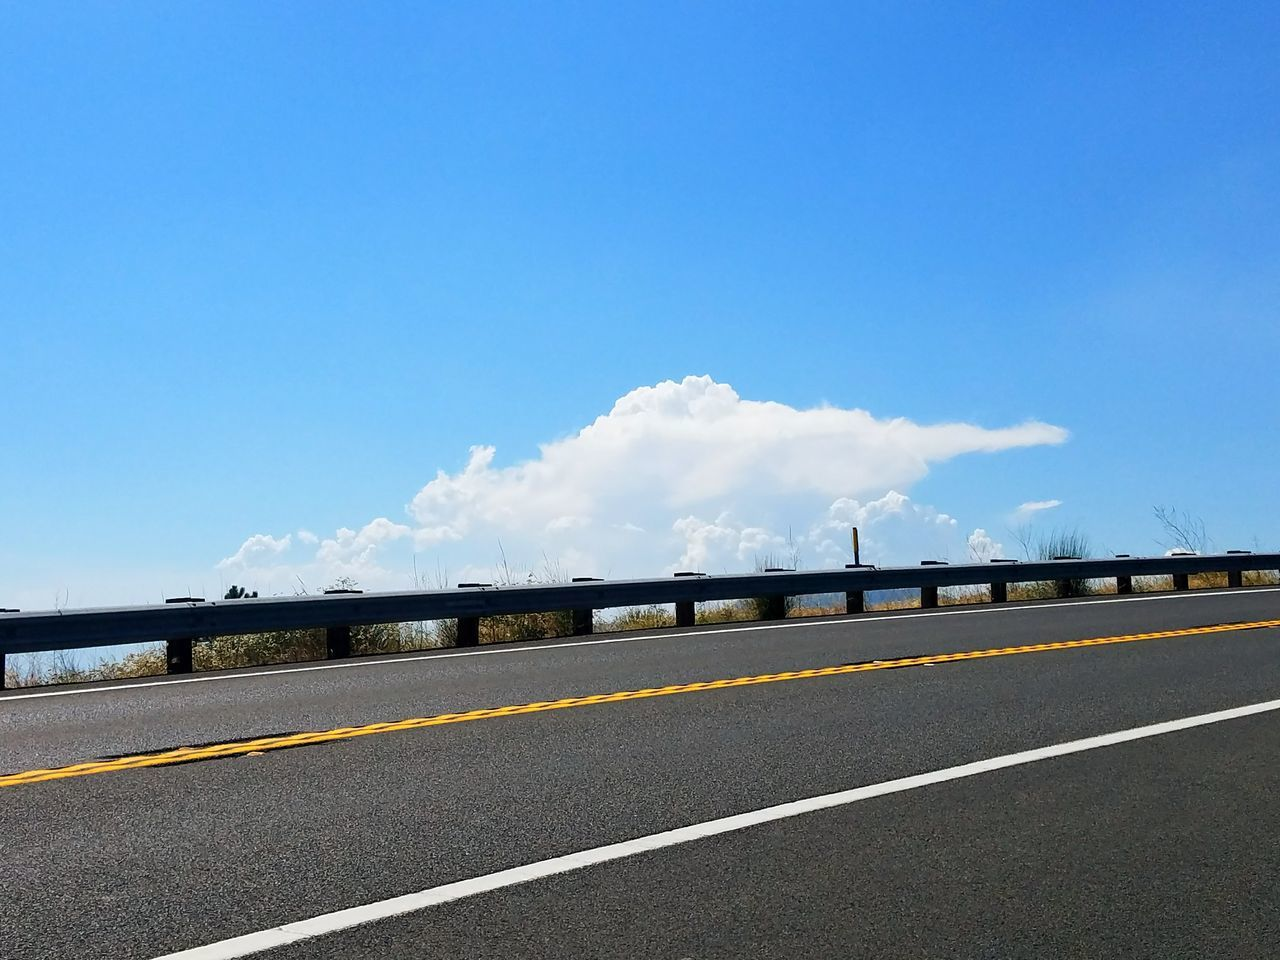 road, transportation, the way forward, day, sky, blue, asphalt, outdoors, dividing line, no people